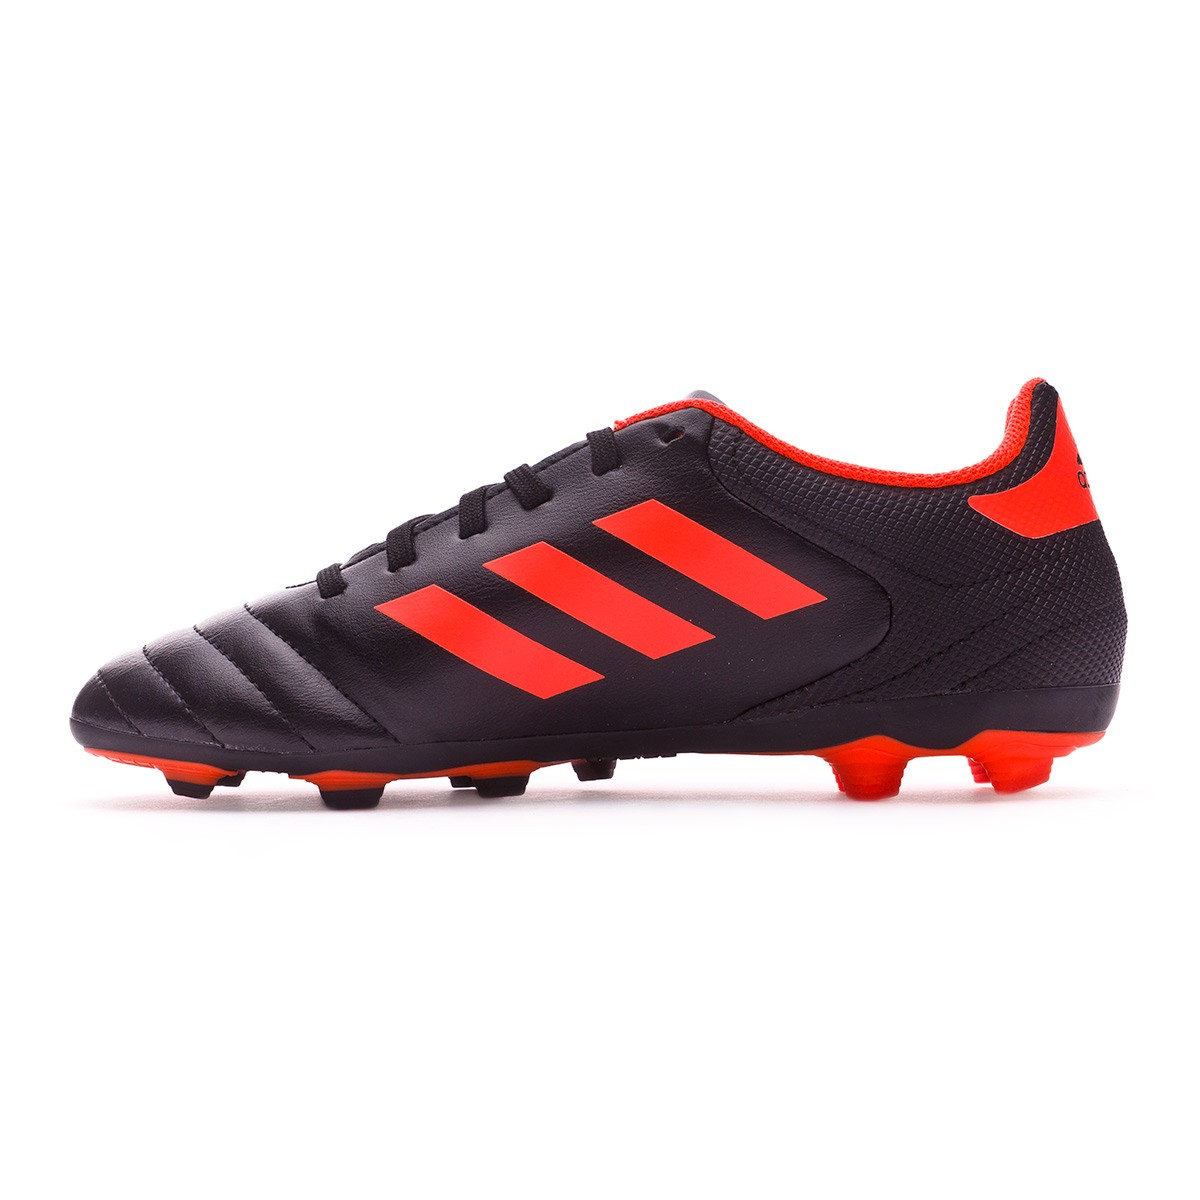 premium selection cb0e8 36f8c Boot adidas Copa 17.4 FxG kids Core black-Solar red - Football store Fútbol  Emotion